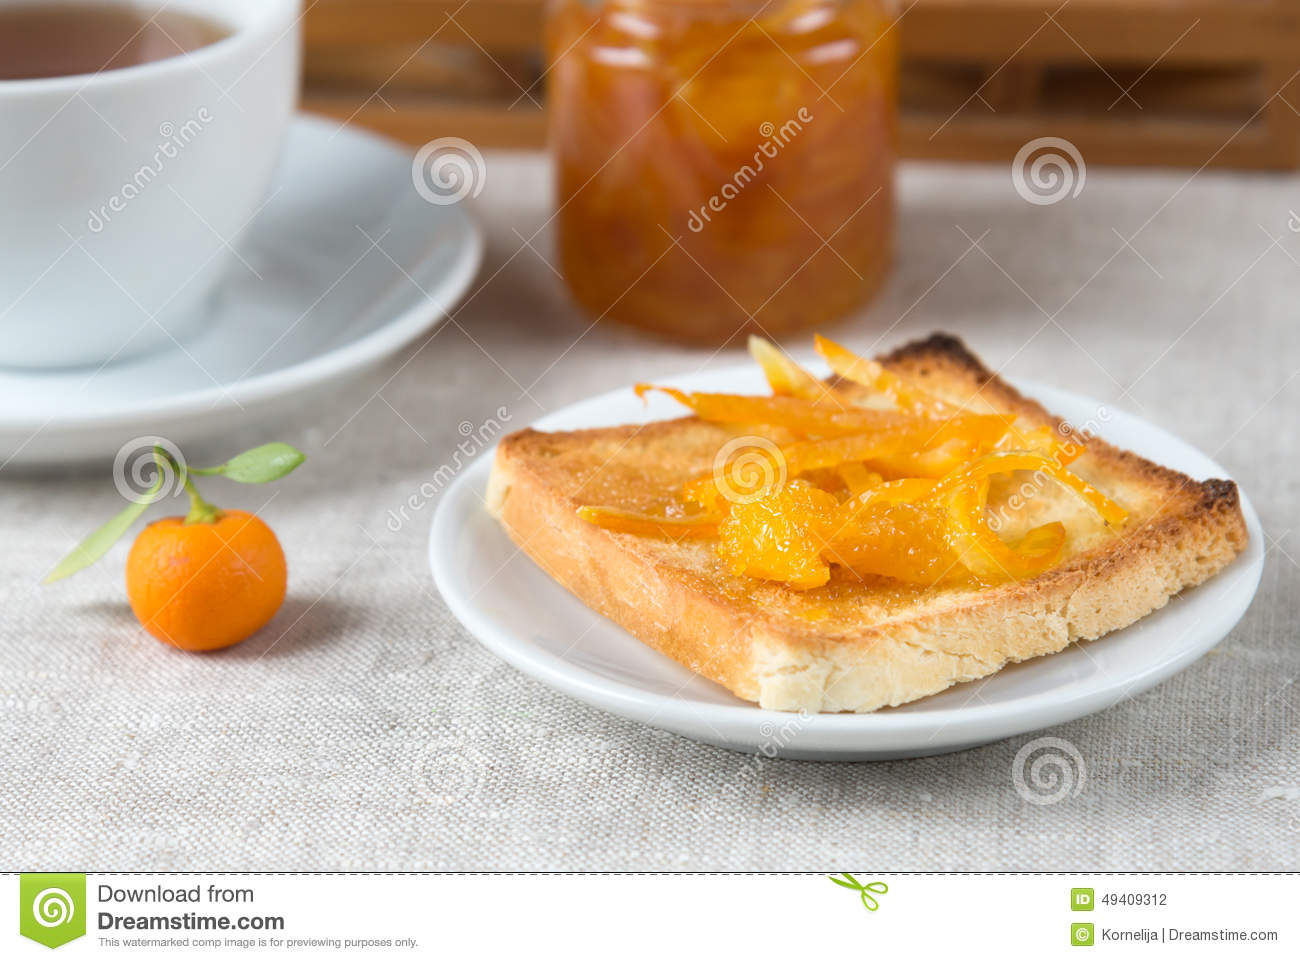 Download Orange Gelee auf Toast stockfoto. Bild von frische, marmelade - 49409312